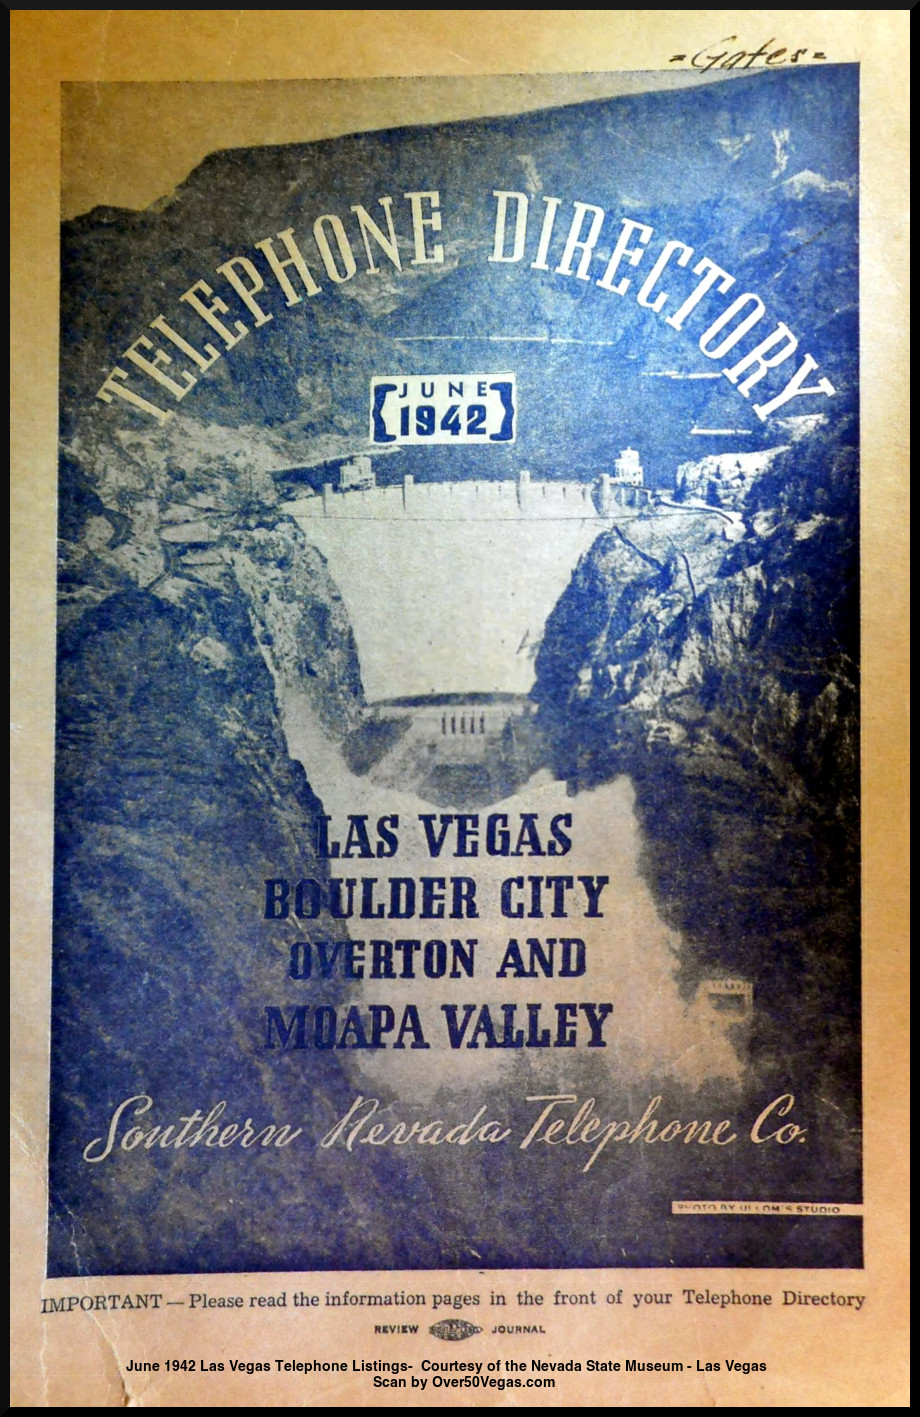 June 1942 Las Vegas Telephone Listings-  Courtesy of the Nevada State Museum - Las Vegas         